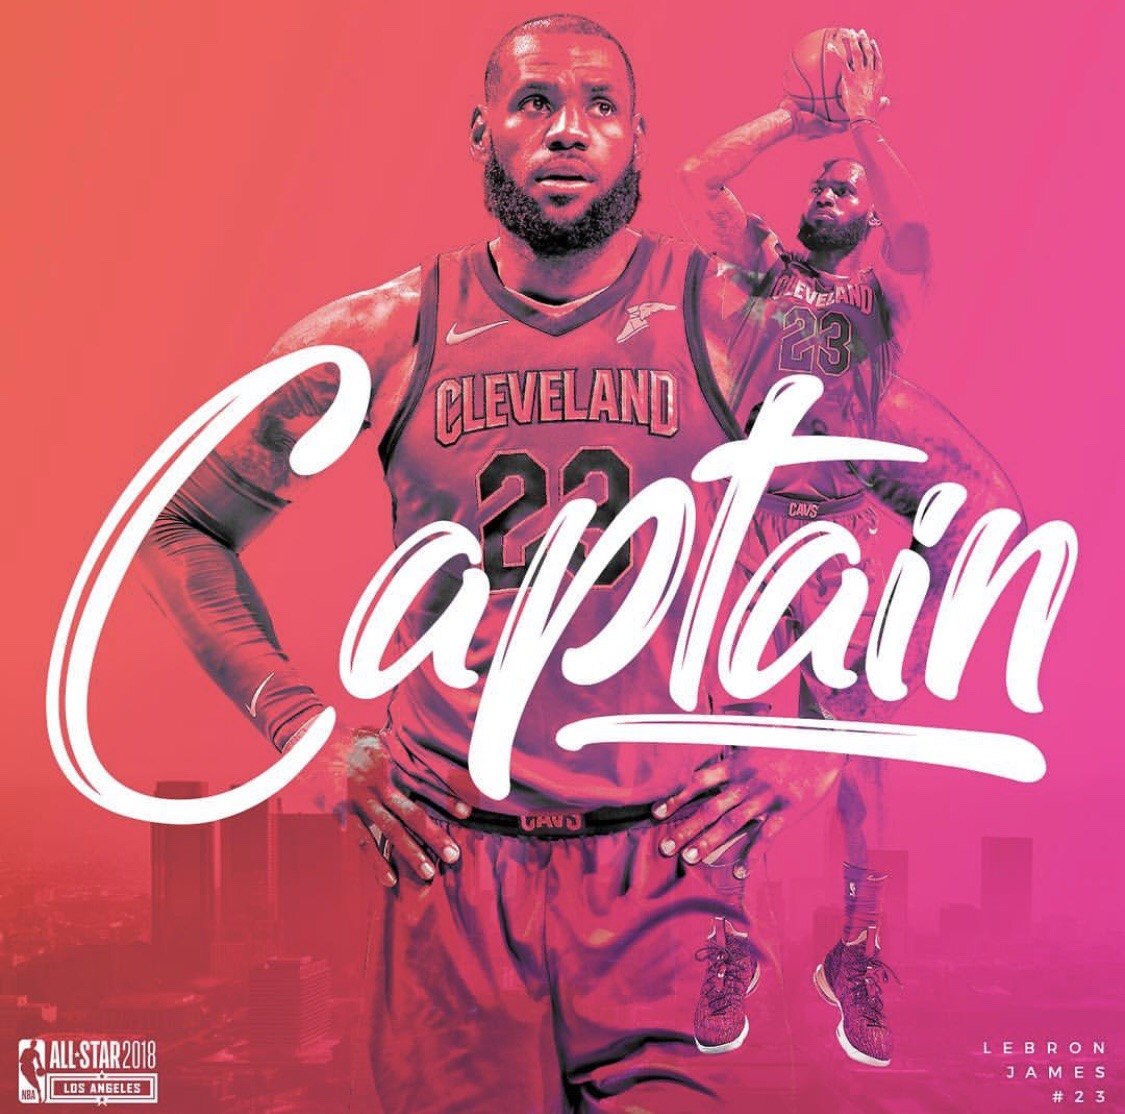 2018 NBA all-star Eastern starters captain LeBron James, Cleveland Cavaliers